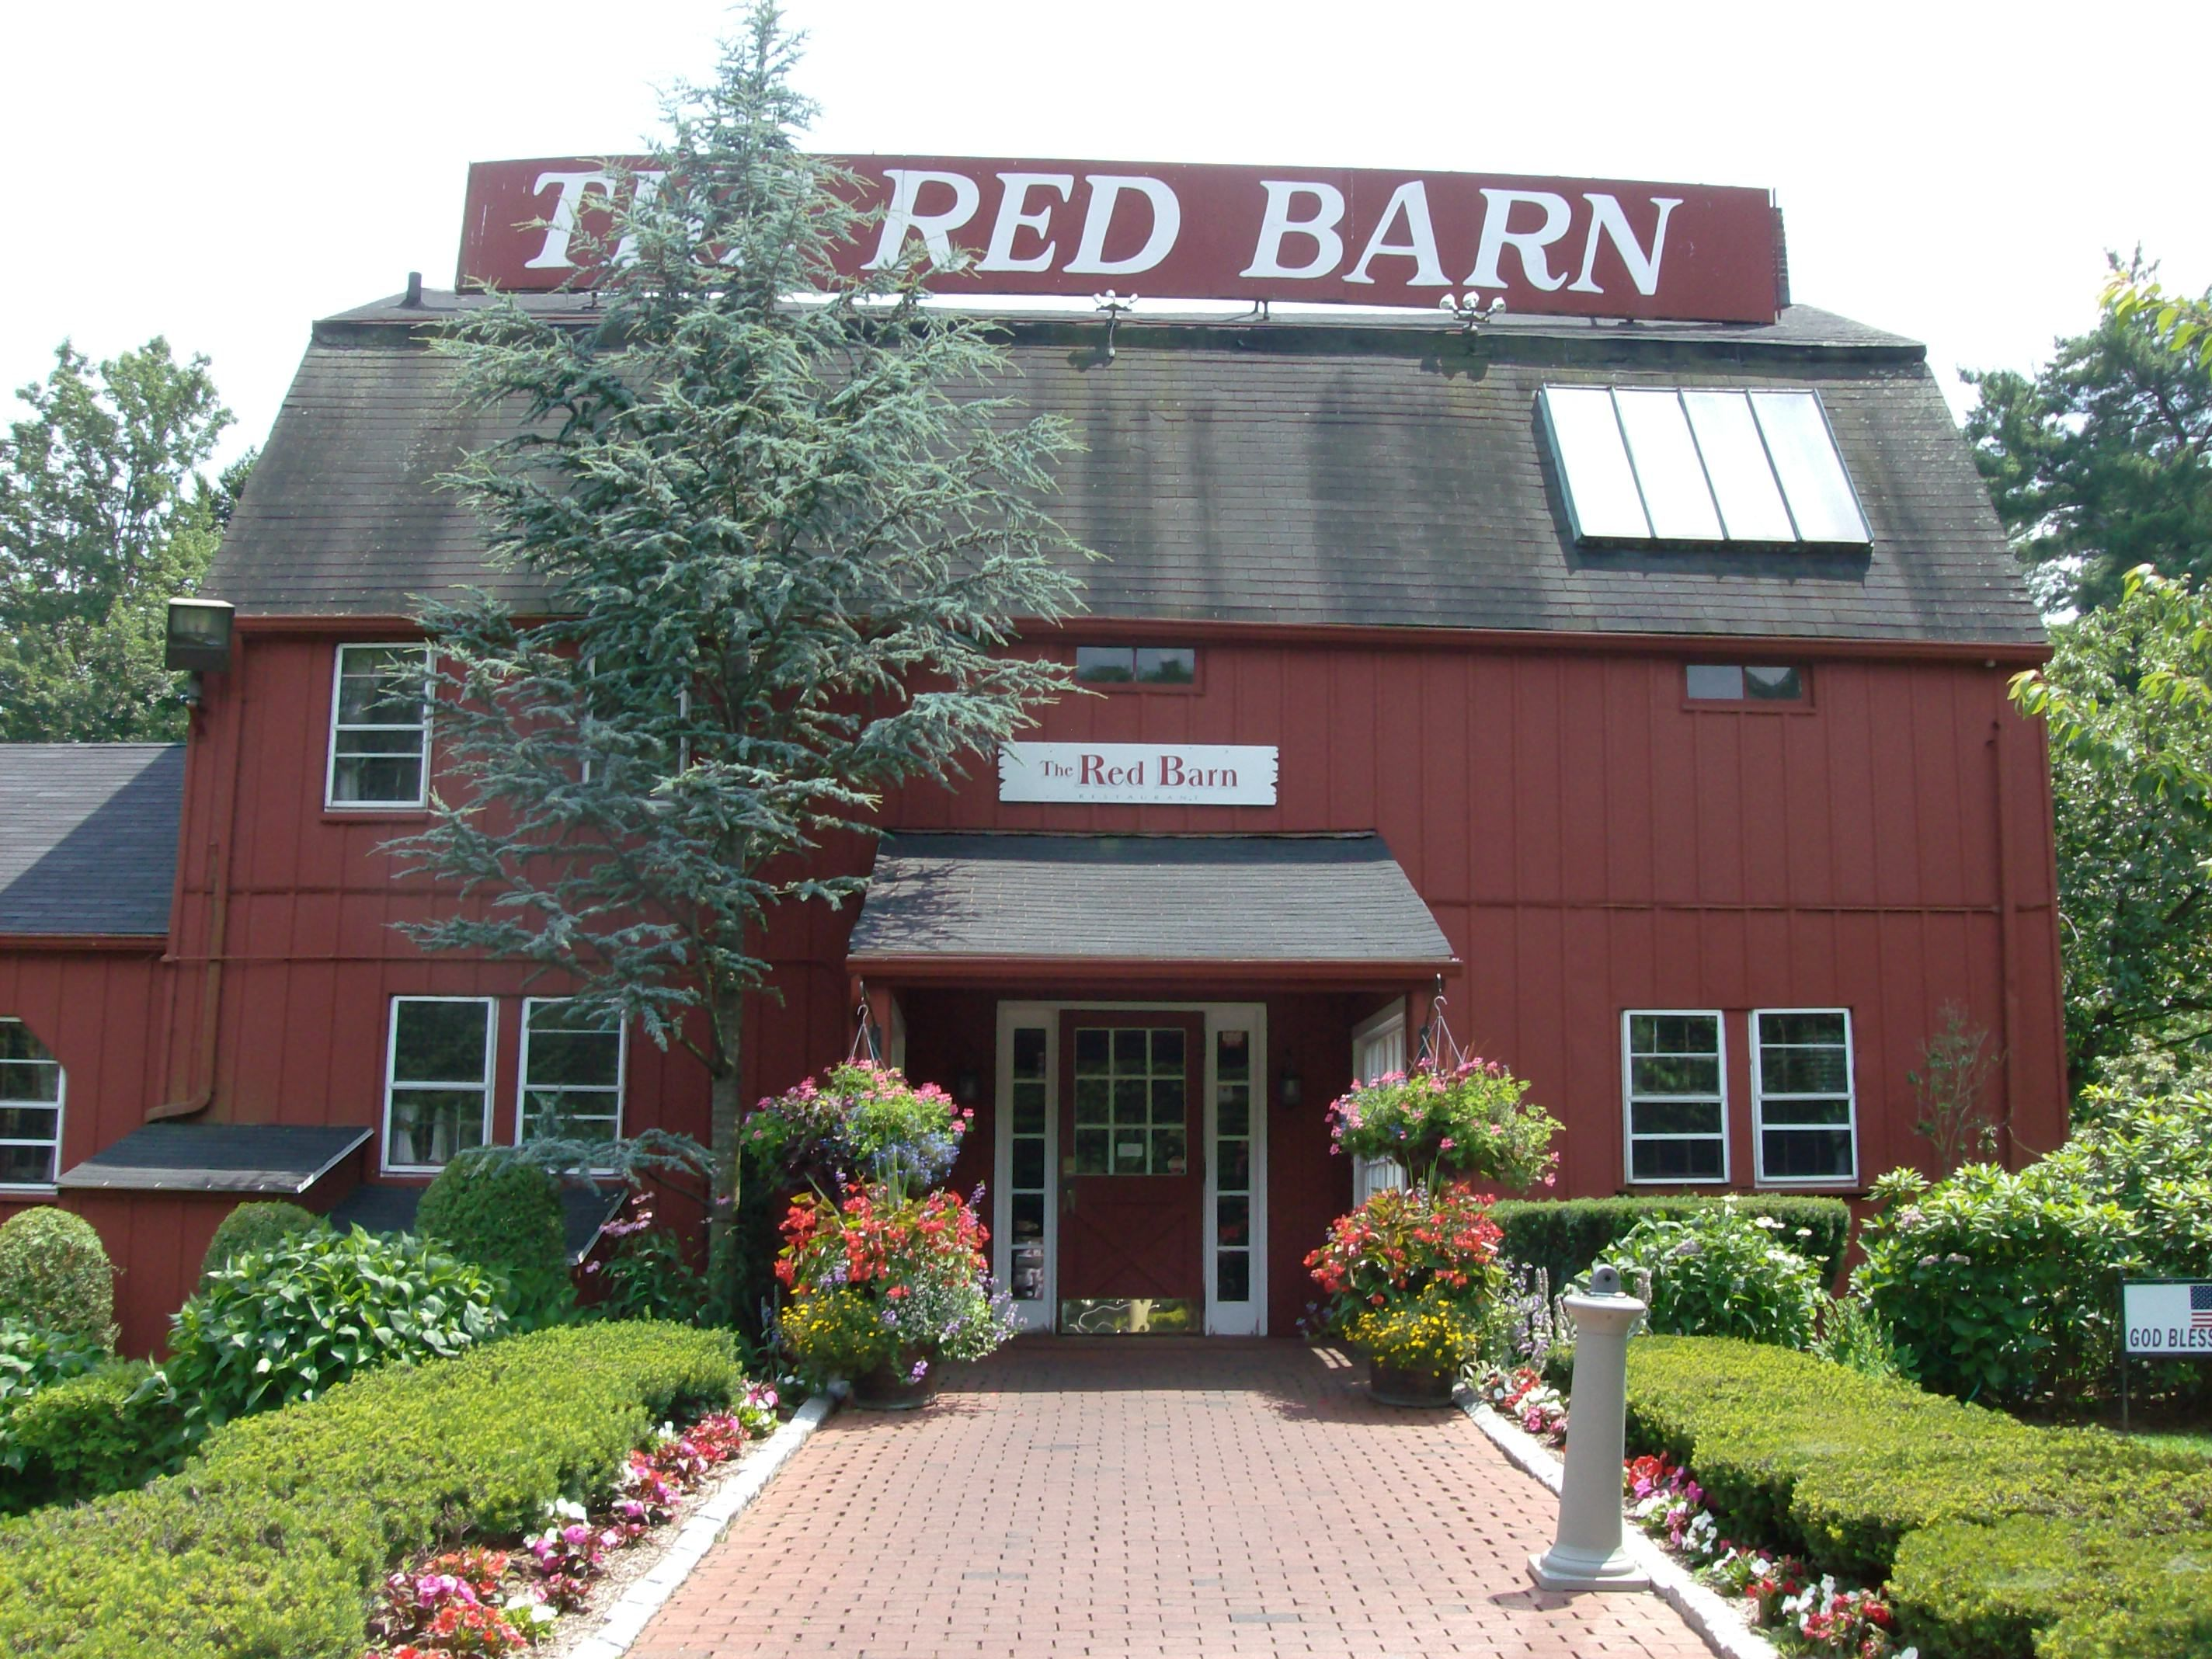 The Red Barn Restaurant Westport Ct Photo By Eve G